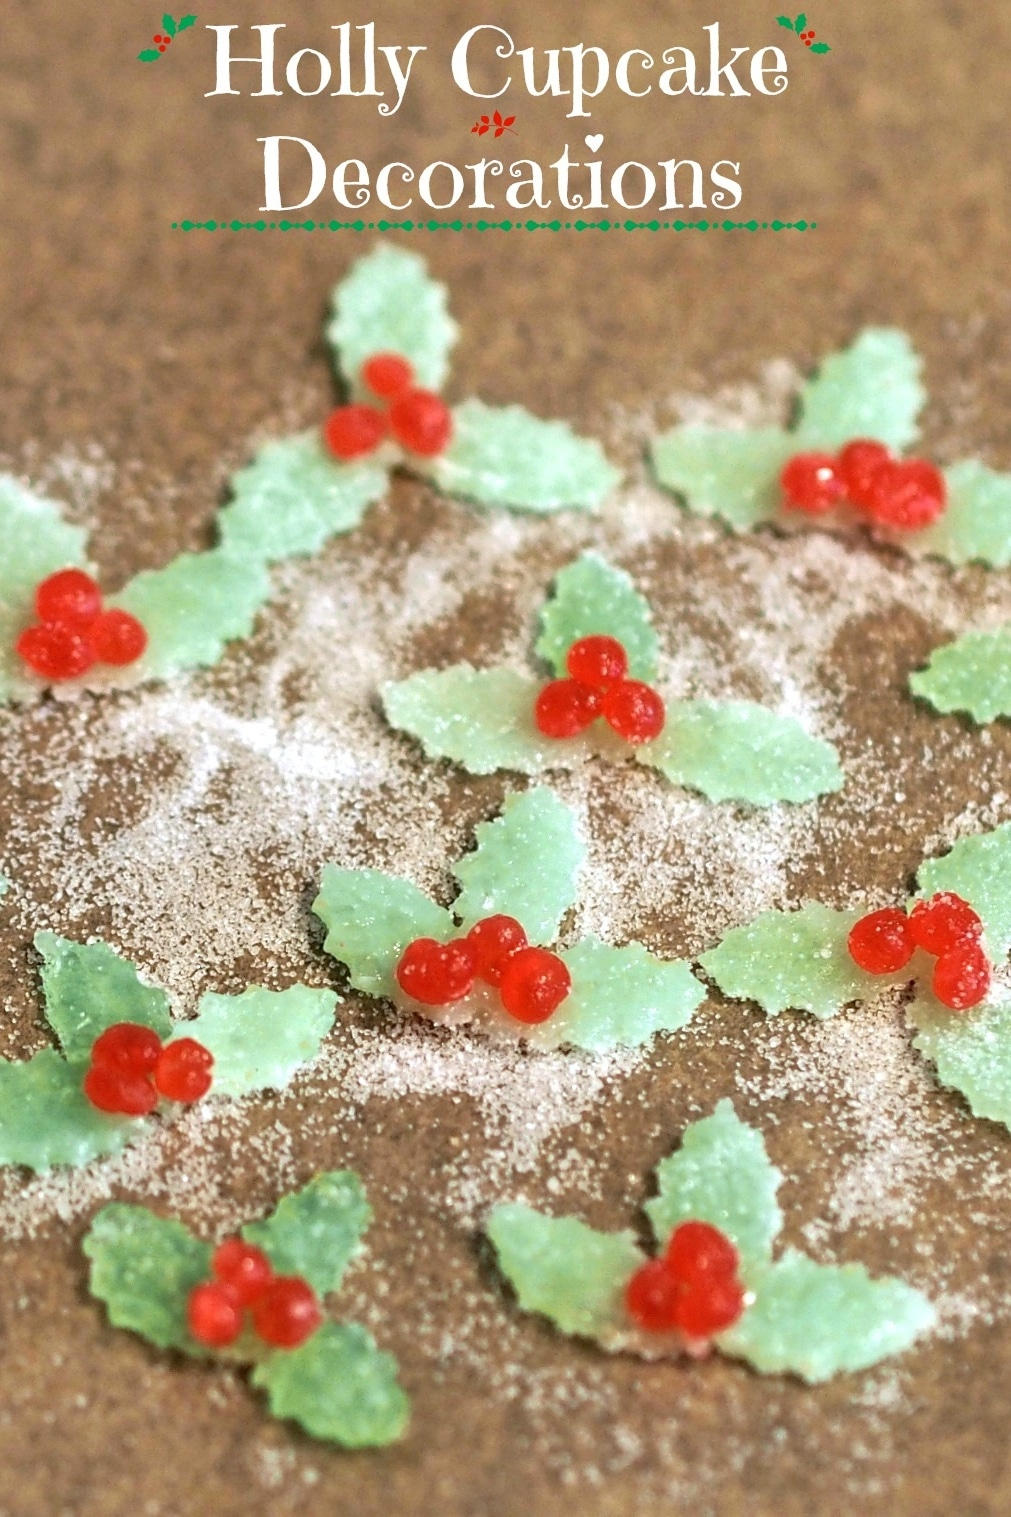 Candy Decorations Holly Cupcake Decorations Simply Sated